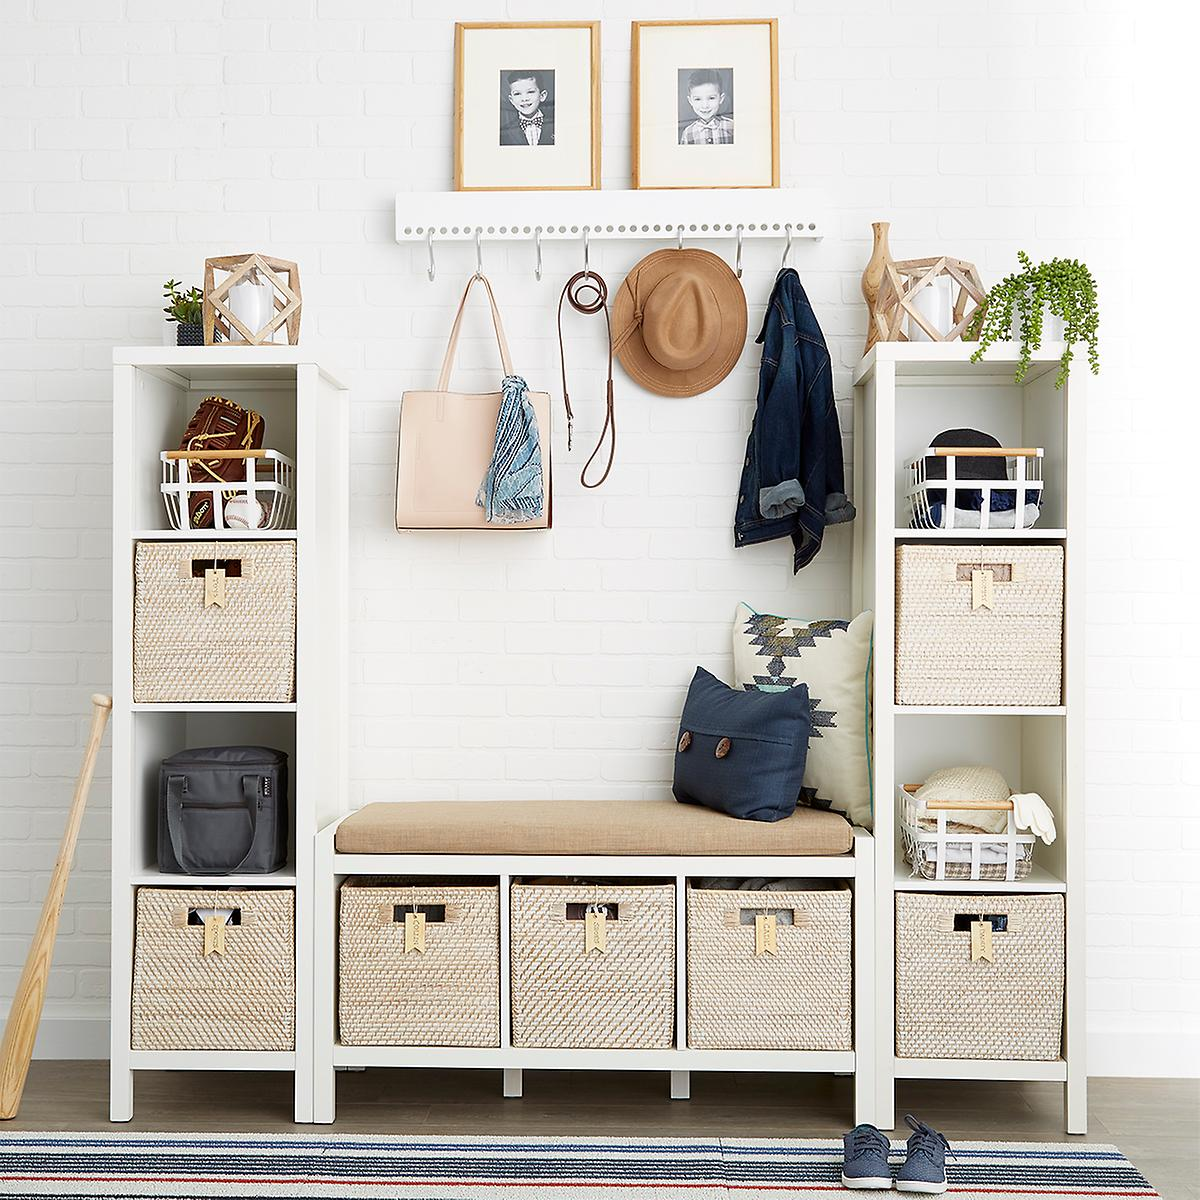 Entryway-Storage-and-also-entryway-console-with-storage-and-also-hallway-storage-ideas-and-also-front-entrance-storage-and-also-upholstered-hallway-bench